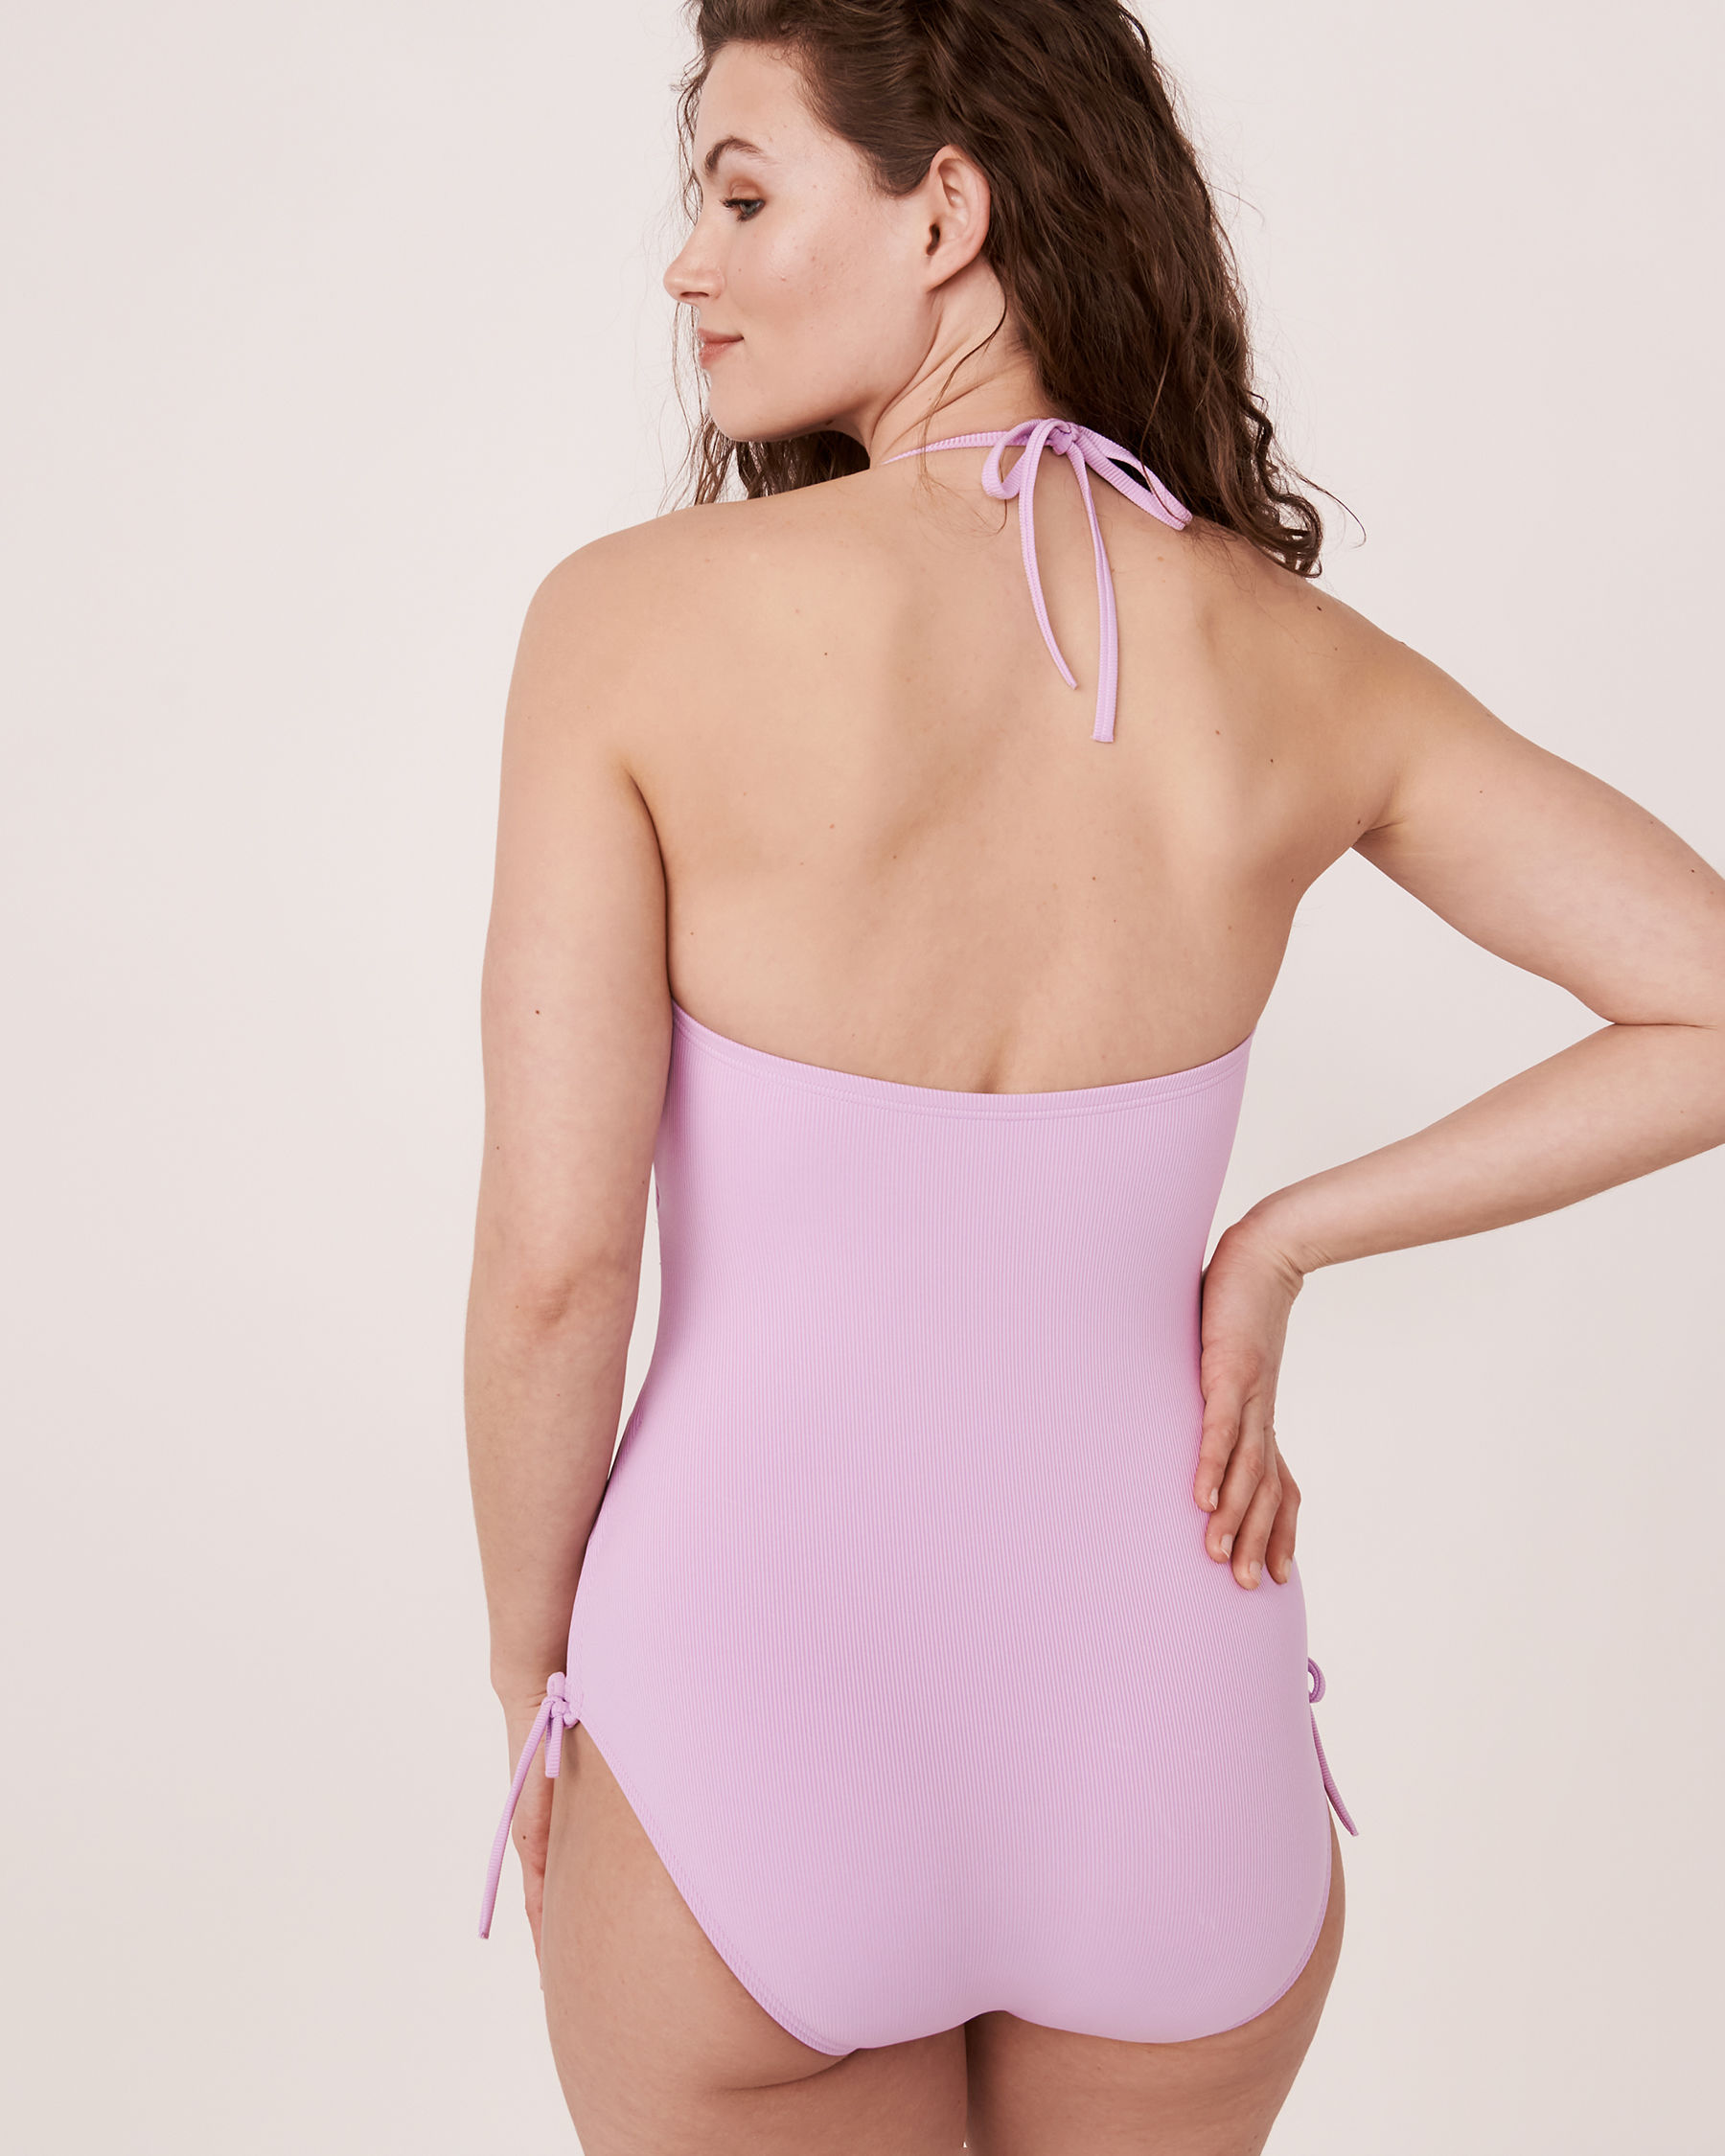 AQUAROSE SOLID RIB Recycled Fibers Bandeau One-piece Swimsuit Lilac 70400007 - View2